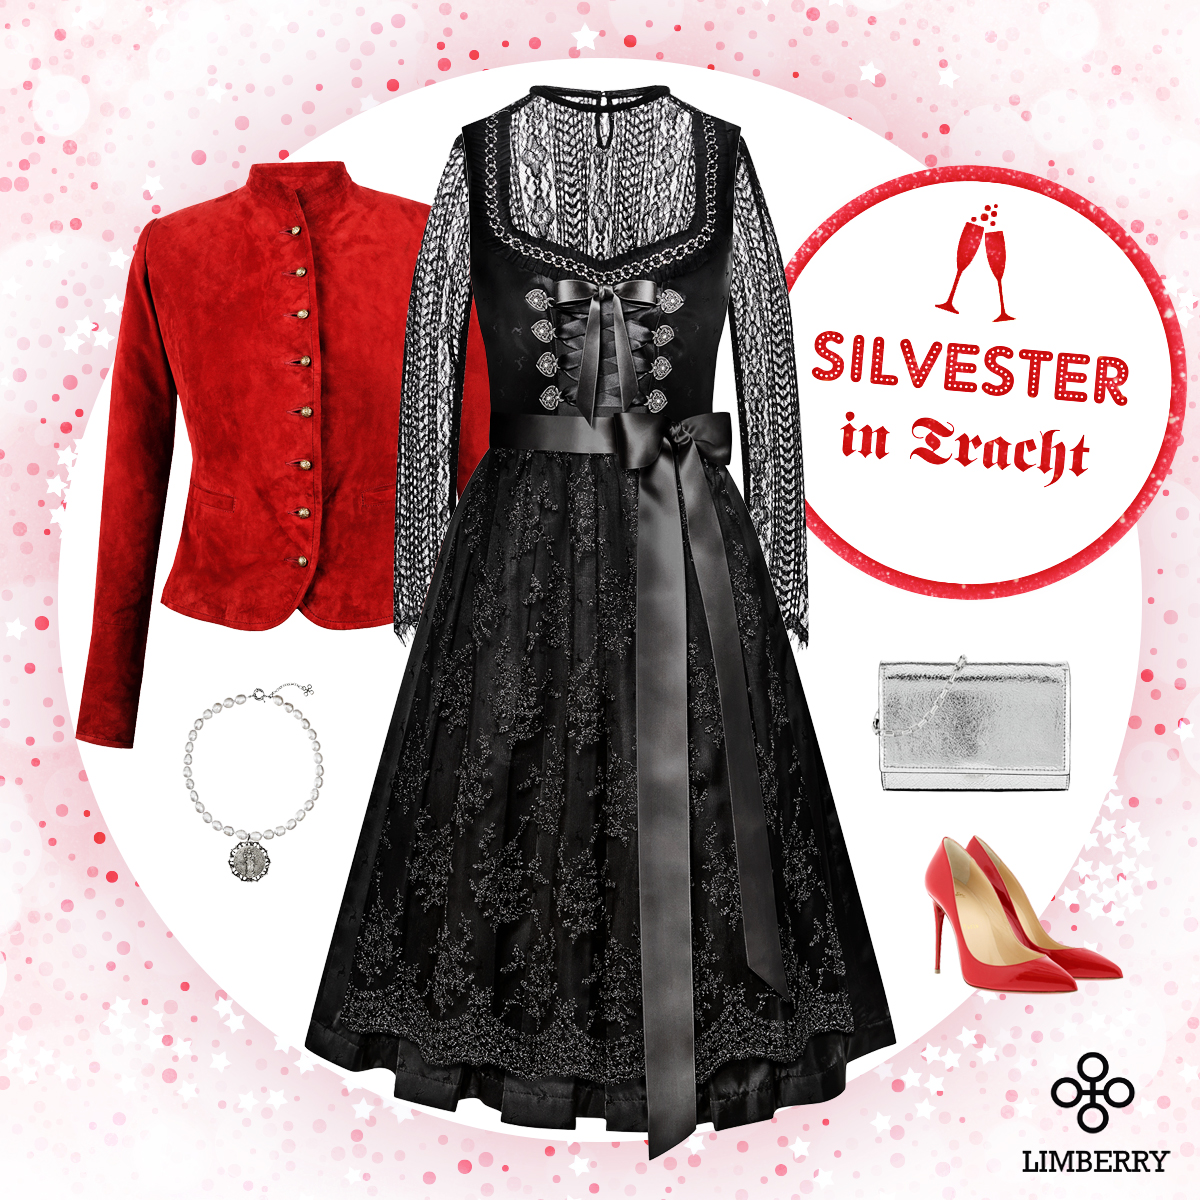 FB-Silvester-Outfit-1